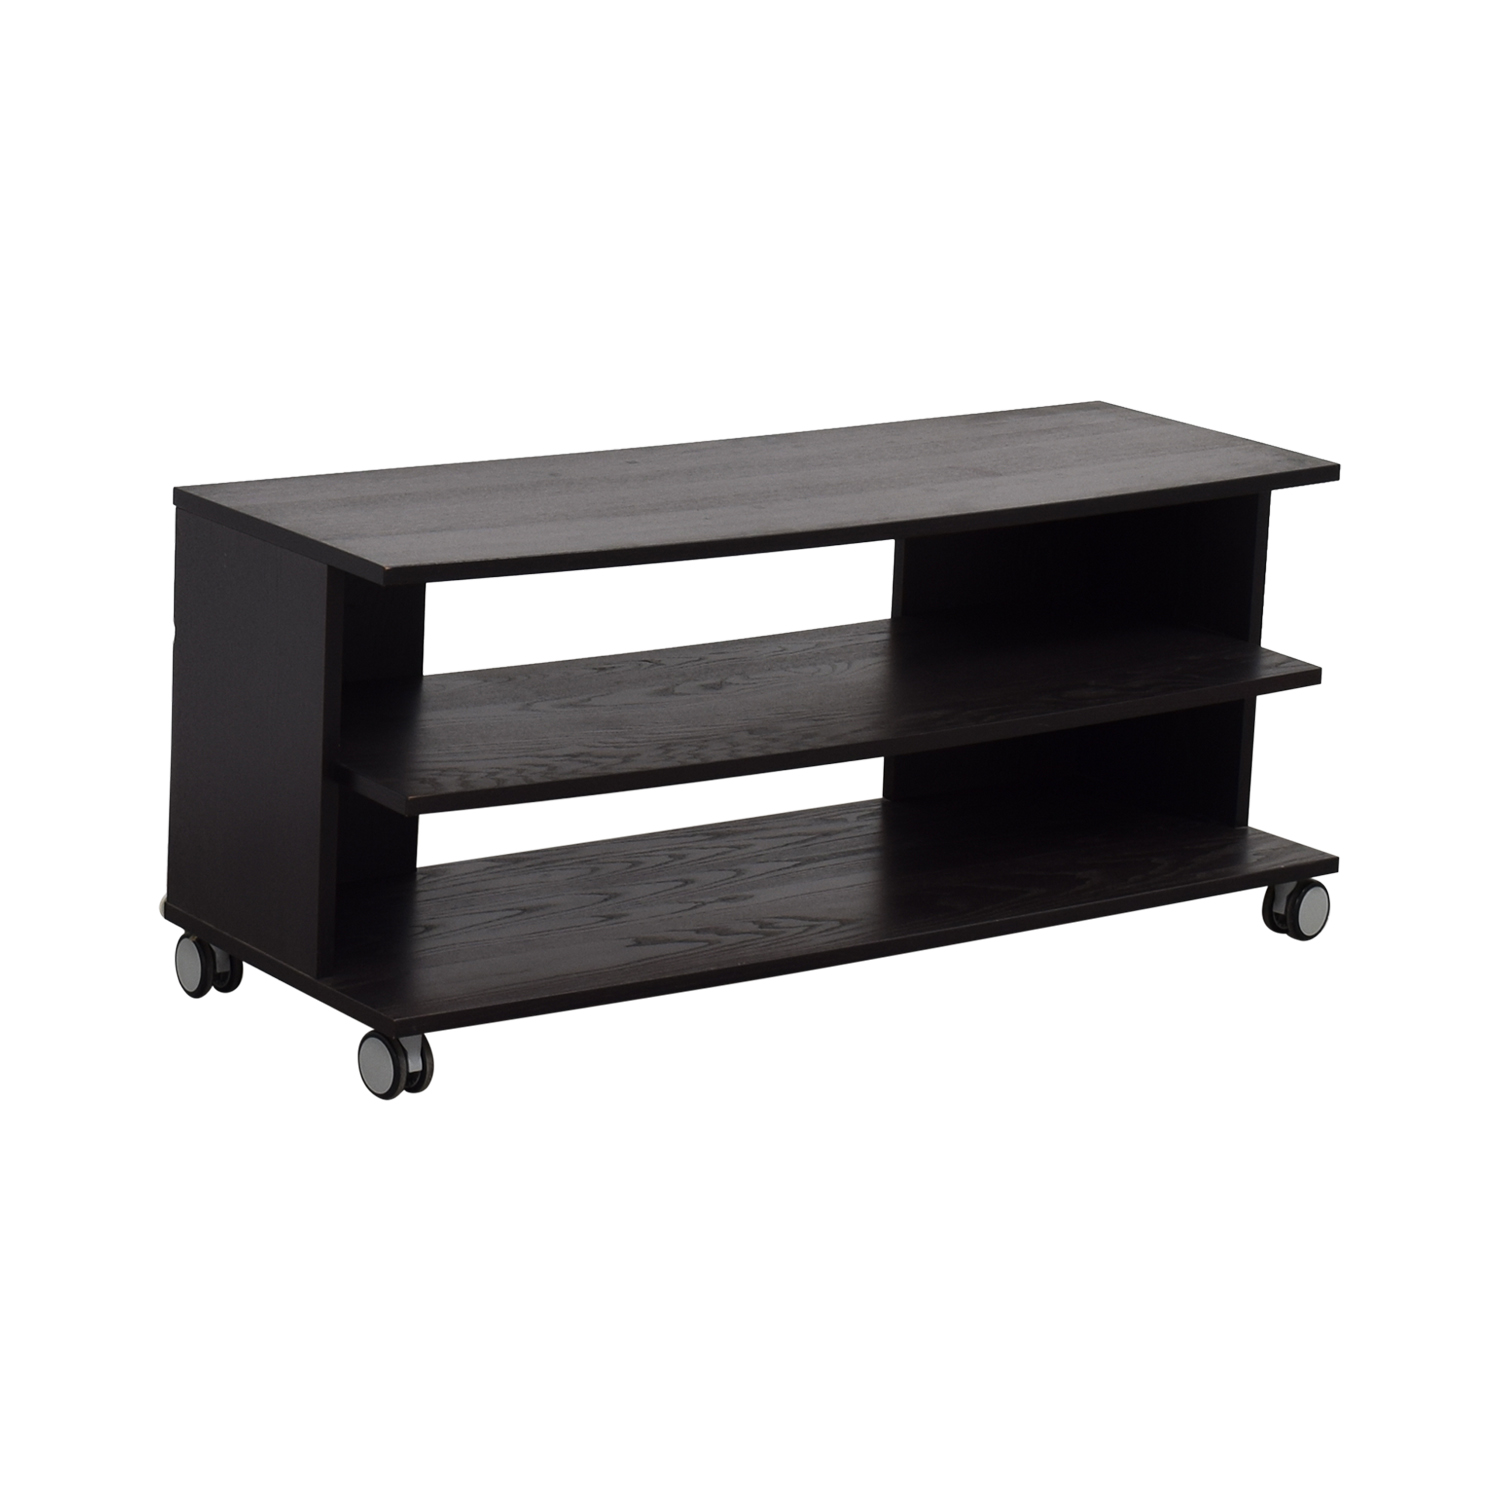 87 off ikea ikea benno tv stand storage. Black Bedroom Furniture Sets. Home Design Ideas